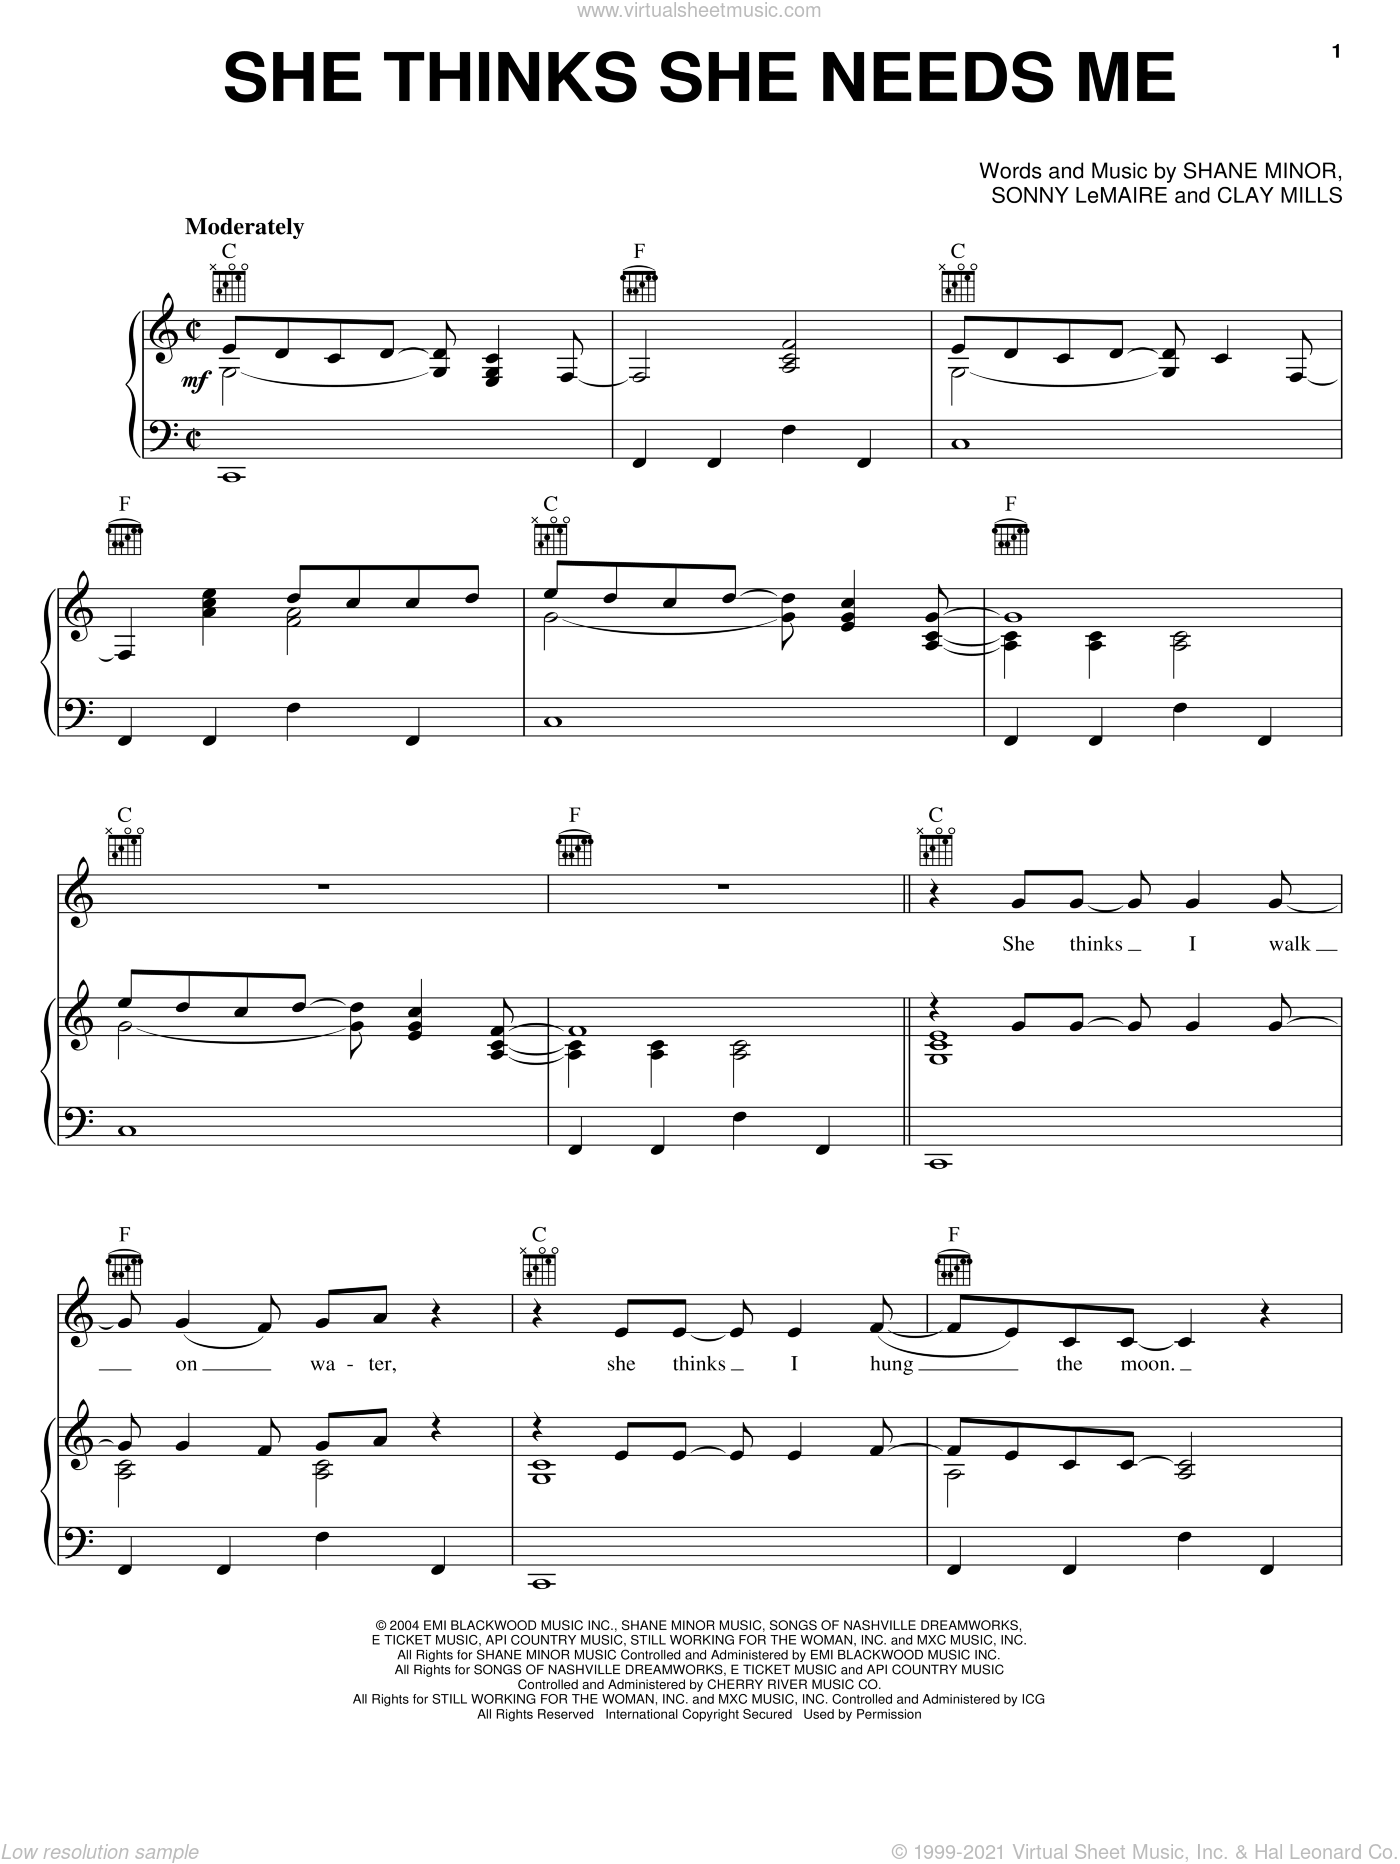 She Thinks She Needs Me sheet music for voice, piano or guitar by Sonny LeMaire